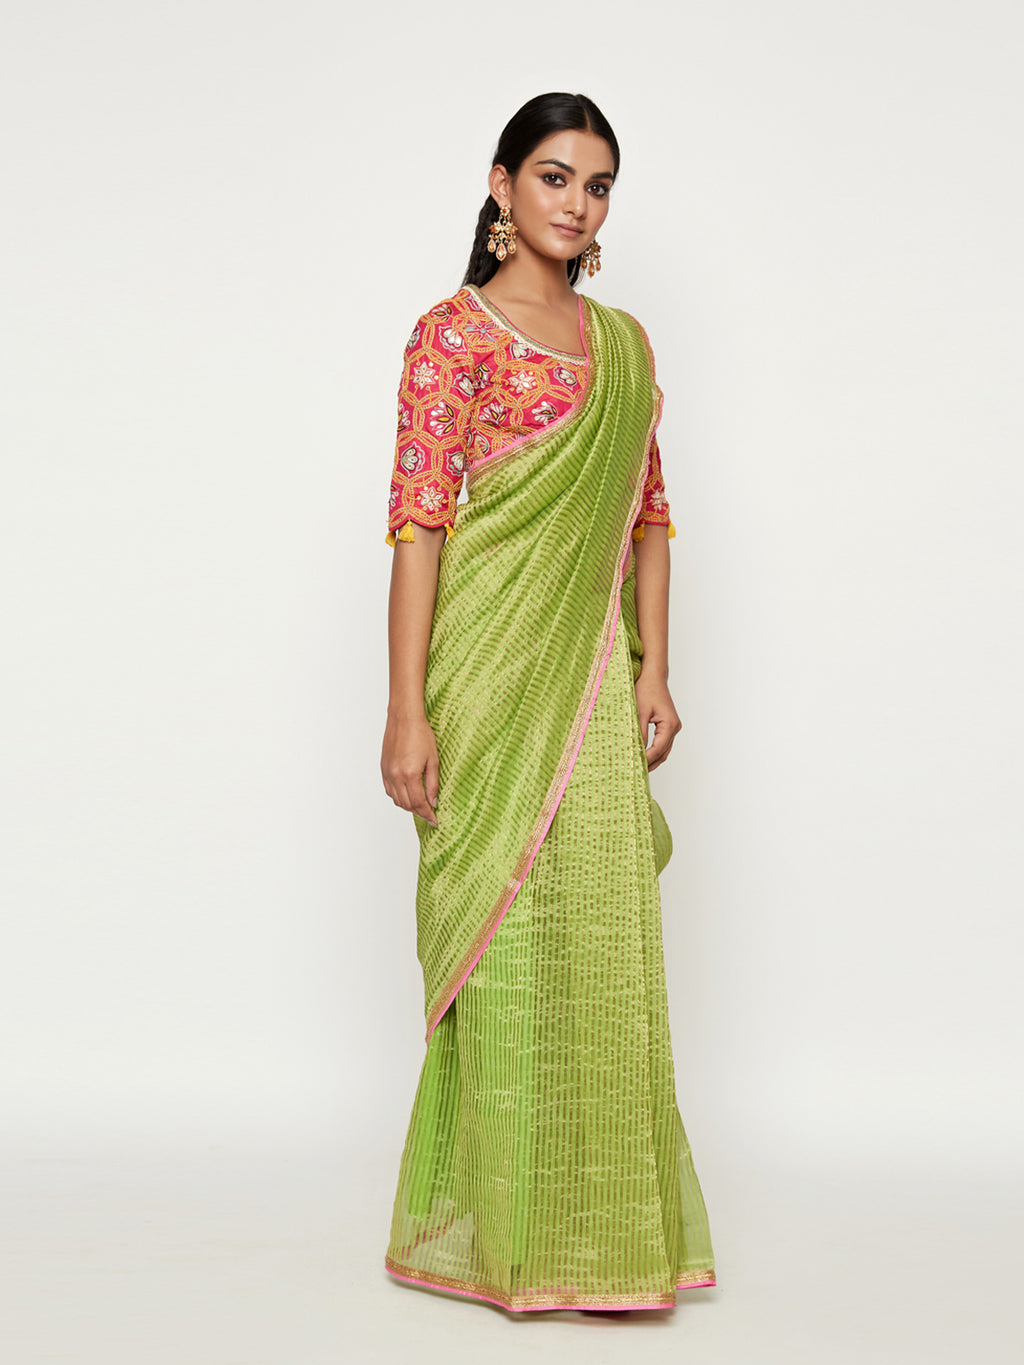 MORBAGH SUNHERI GREEN  SAREE WITH EMBROIDERED BLOUSE